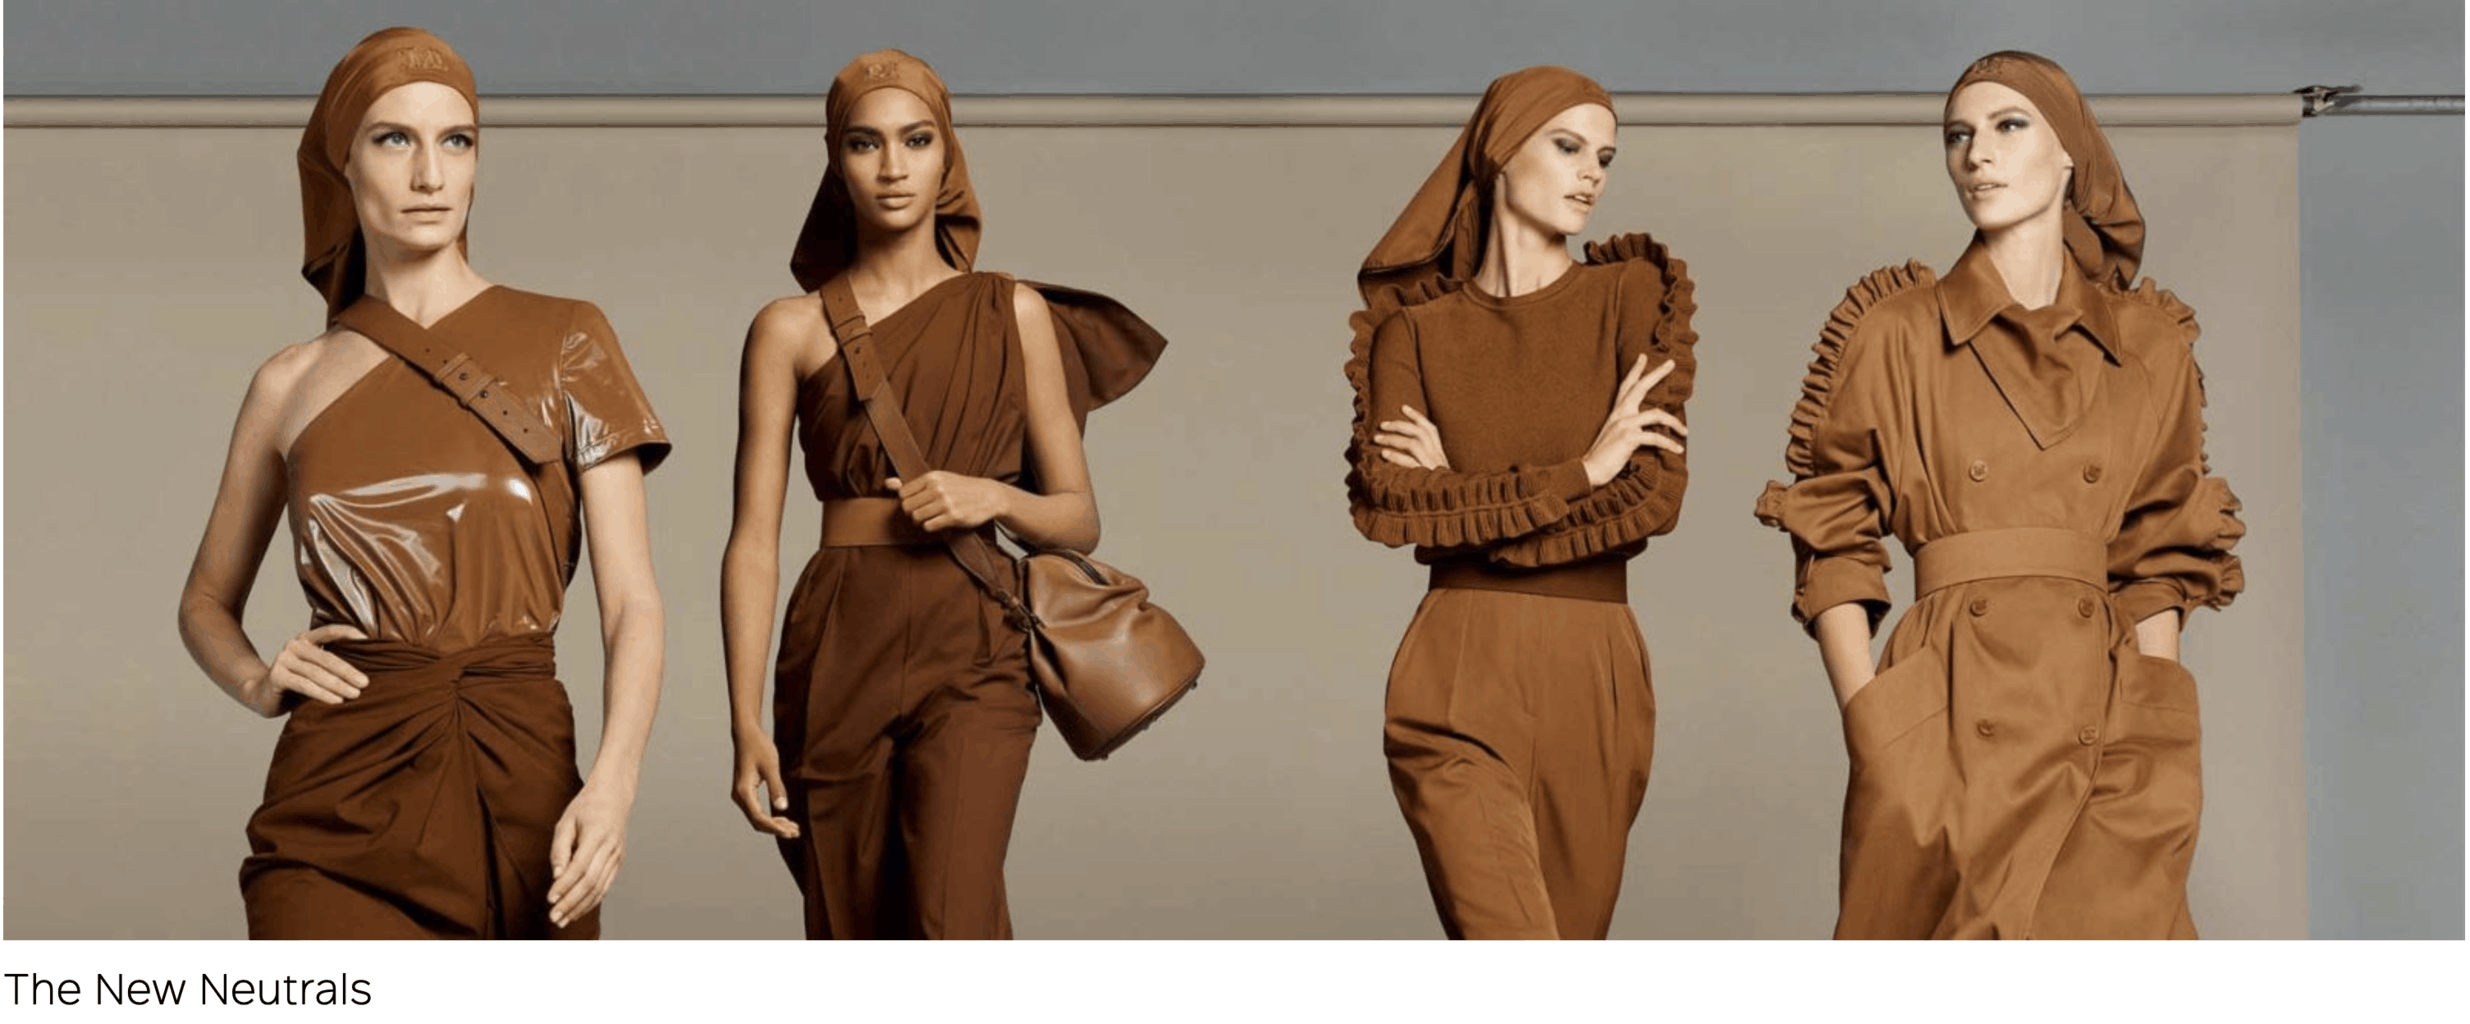 models in matching brown outfits